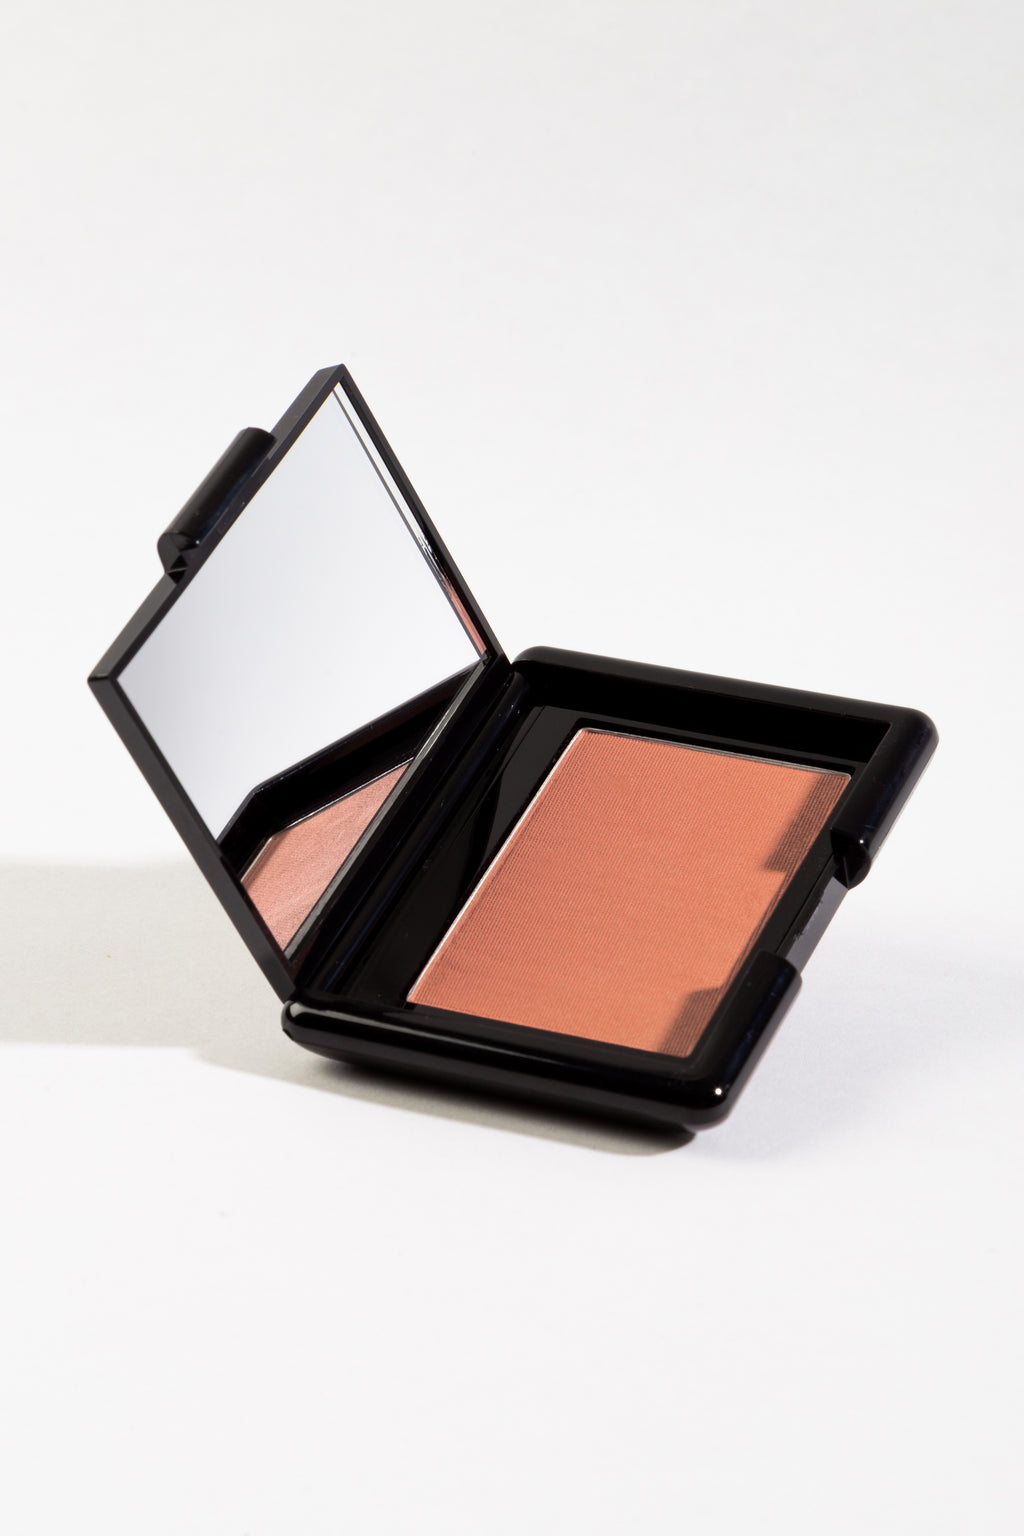 Blush Compact in Cuddle